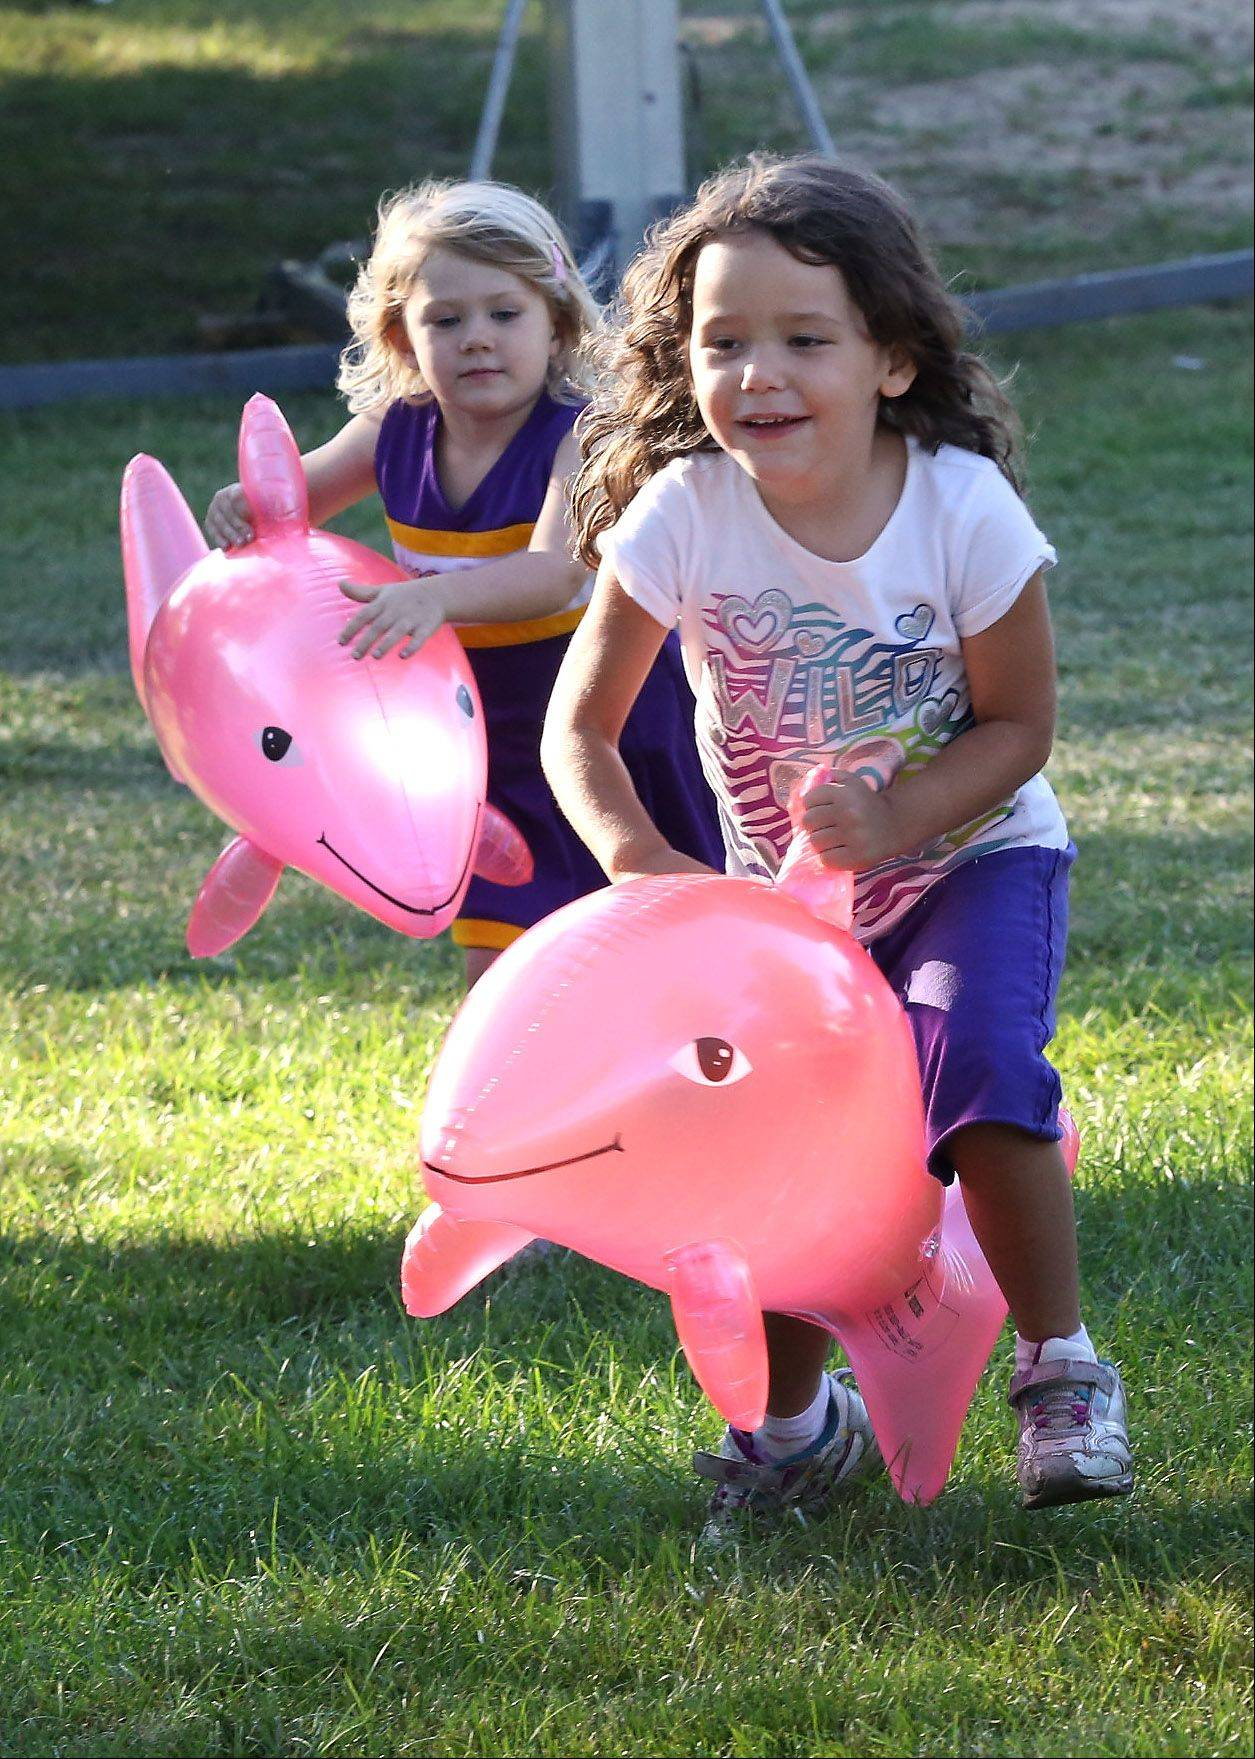 Jade Stles, 5, right, and Payton Rollene, 3, both of Lake Villa play with dolphins that they won at the Inflate Game in the amusement park during the first day of the Lake Villa Days festival Thursday at Lehmann Park. The festival featured games, food, rides and games.